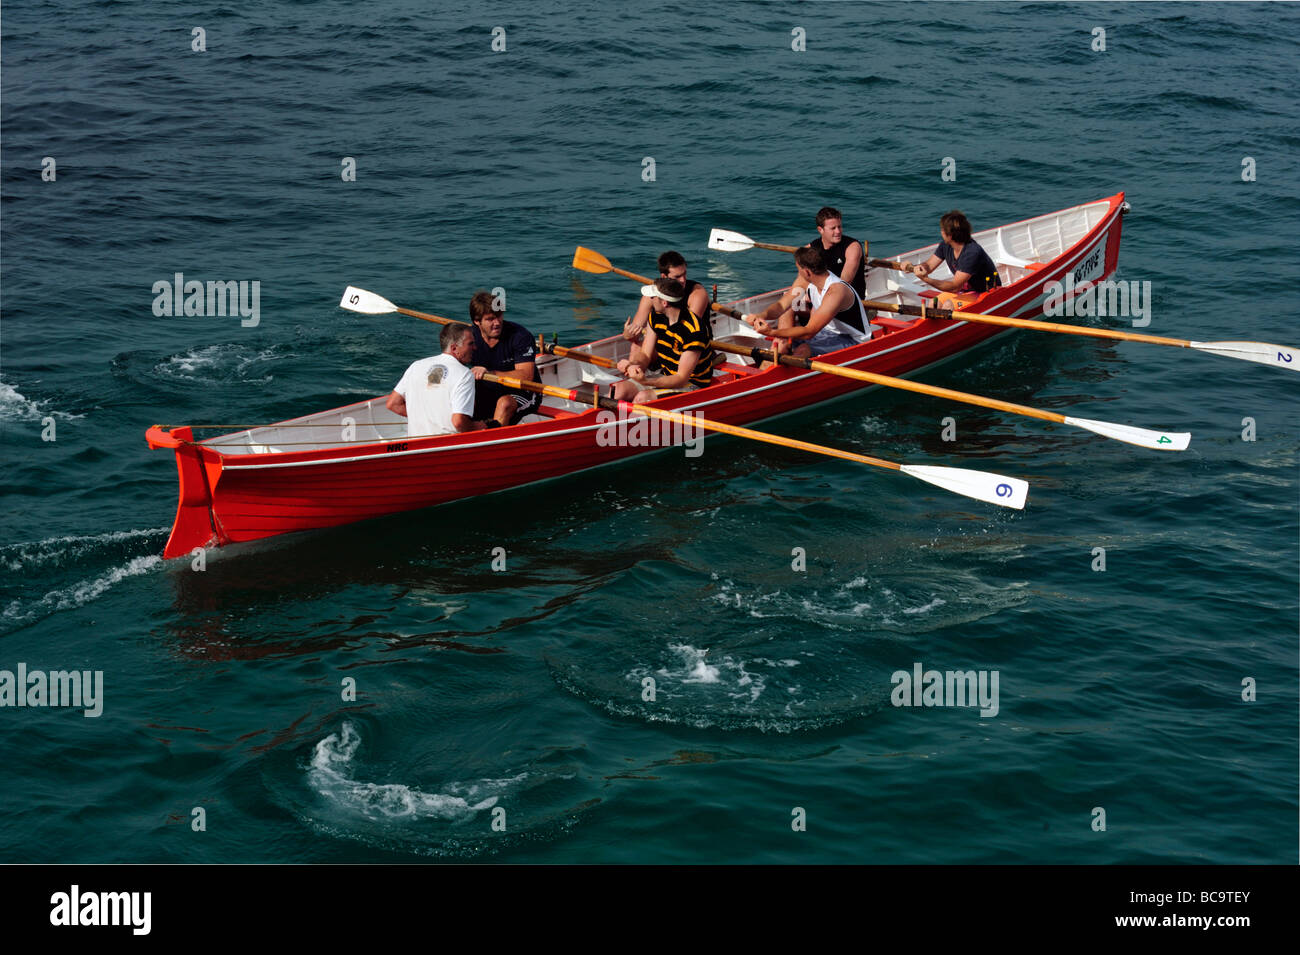 Gig Rowing Boat practising in Newquay Harbour - Stock Image